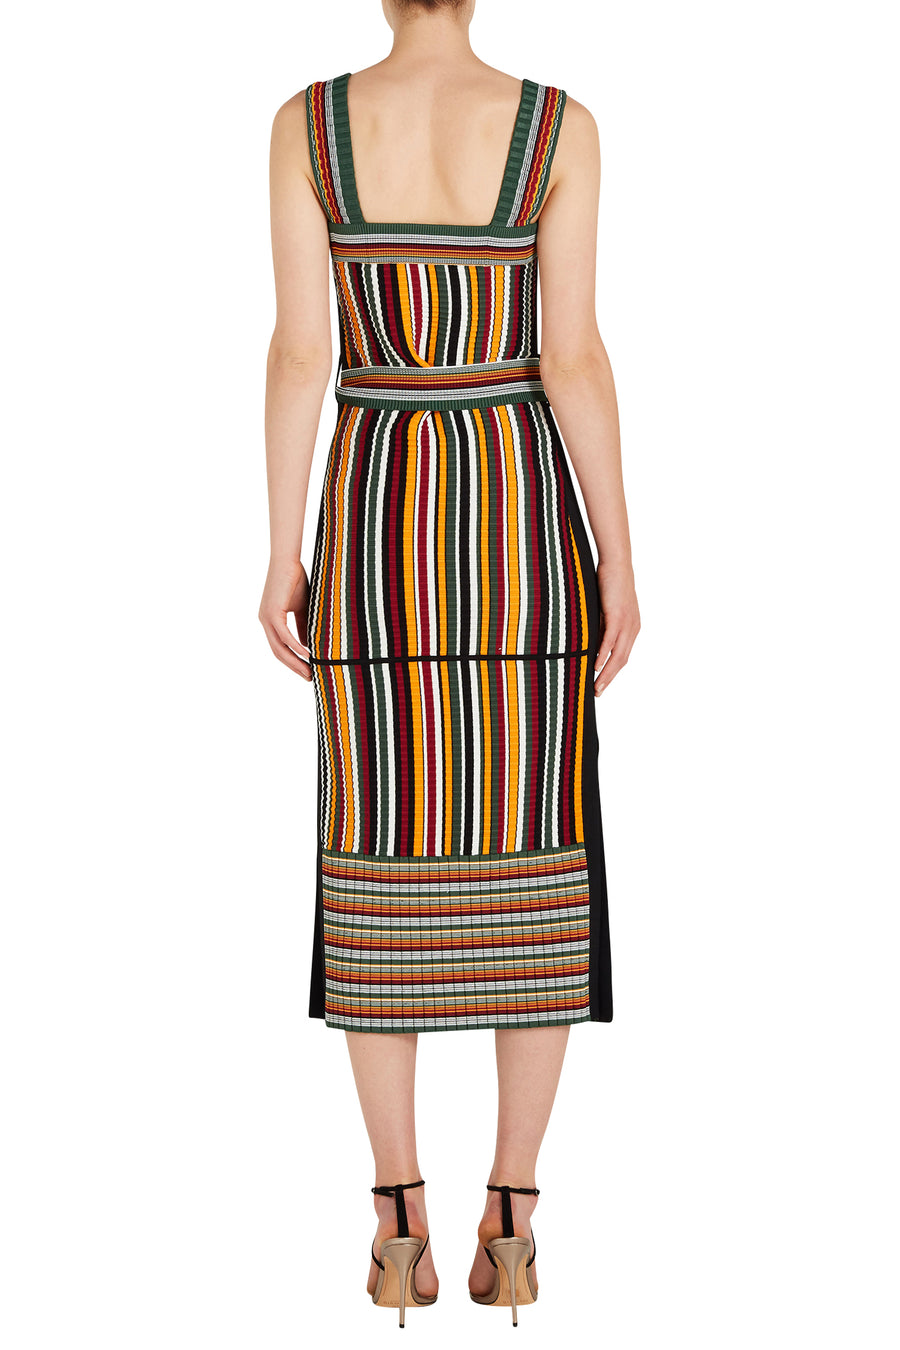 3.1 Phillip Lim Multi Striped Maxi Women's Dress from The New Trend